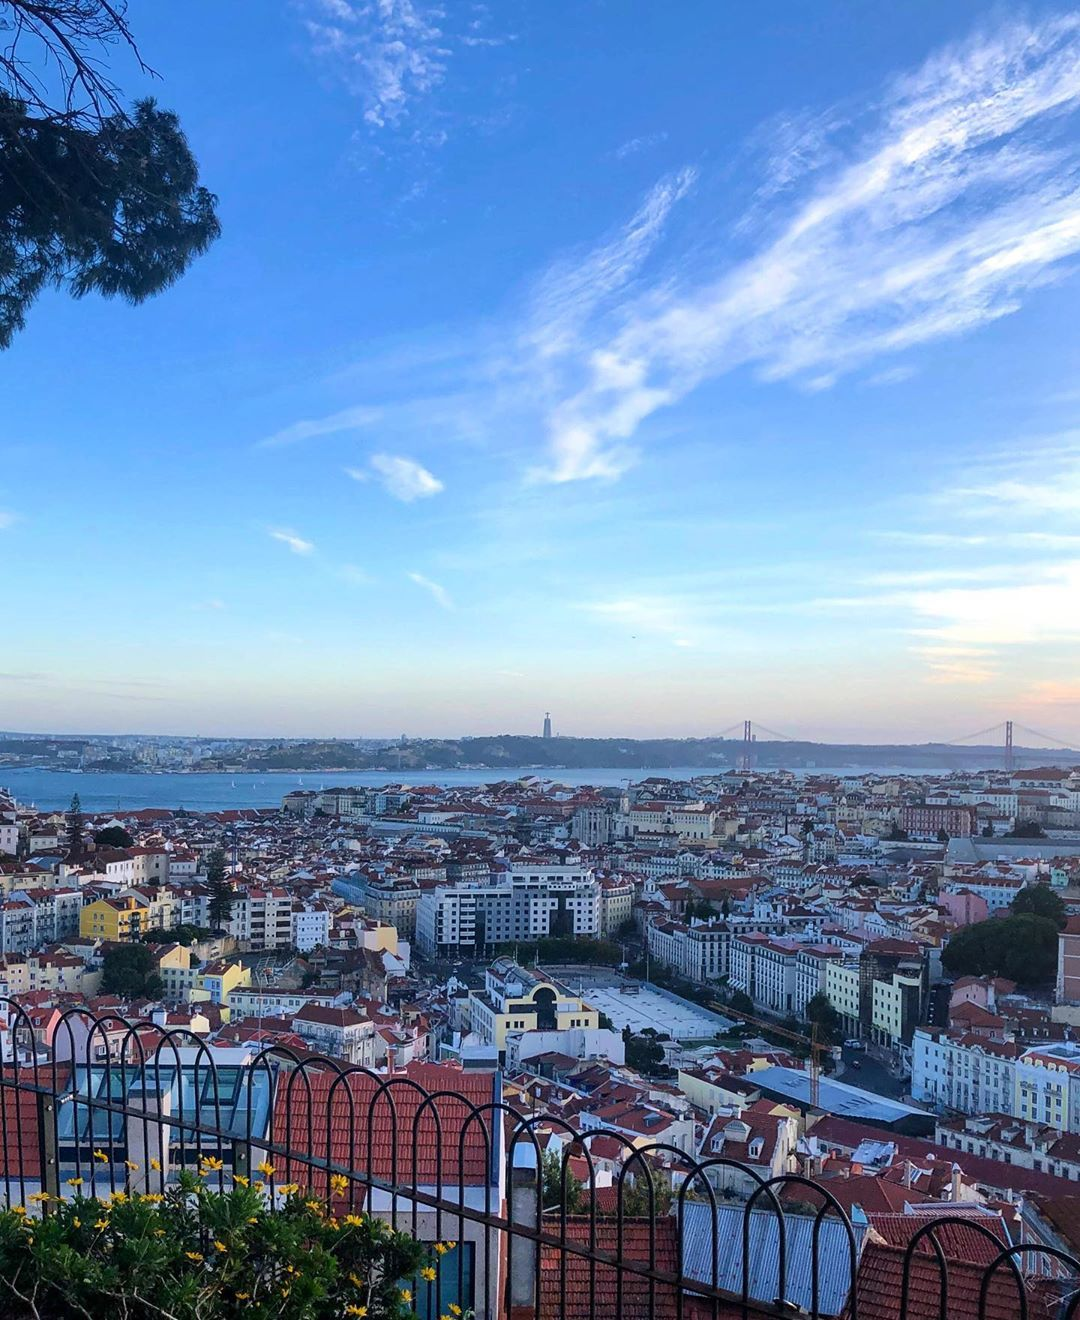 Miradouro Da Senhora Do Monte The Way Up Could Seem Hard But The View Is Totally Worth It Best Spot To See Lisbon From The Top Lisbon Views Instagram